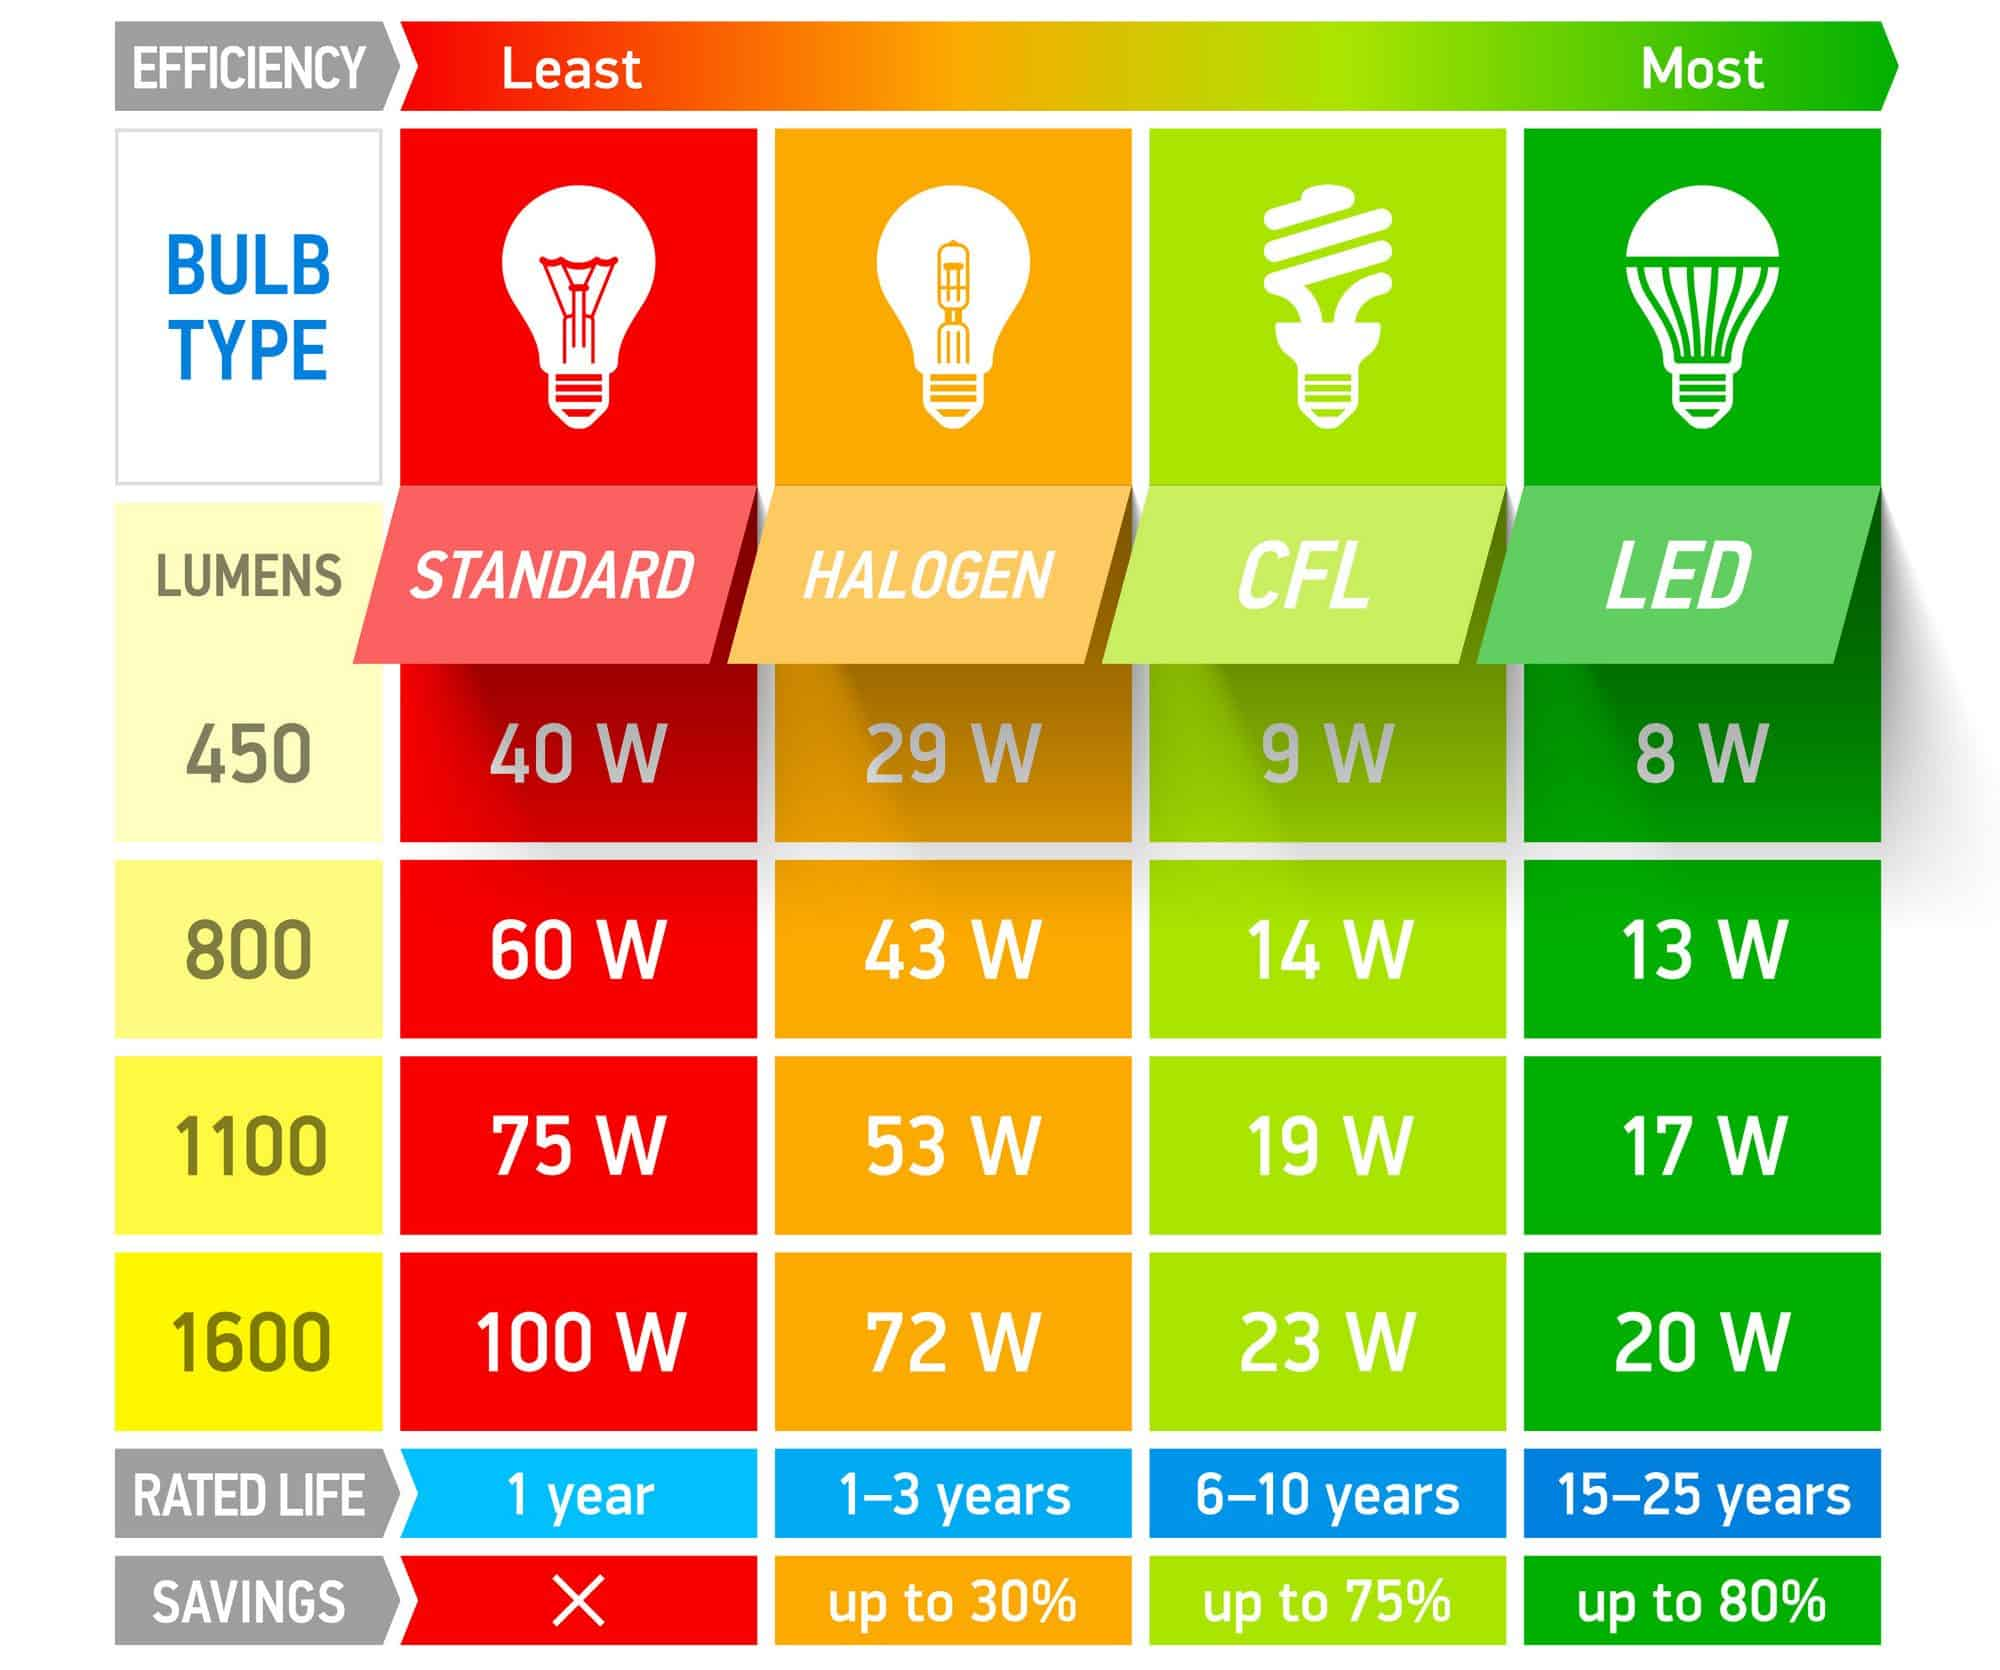 Efficiencies of different types of light bulbs